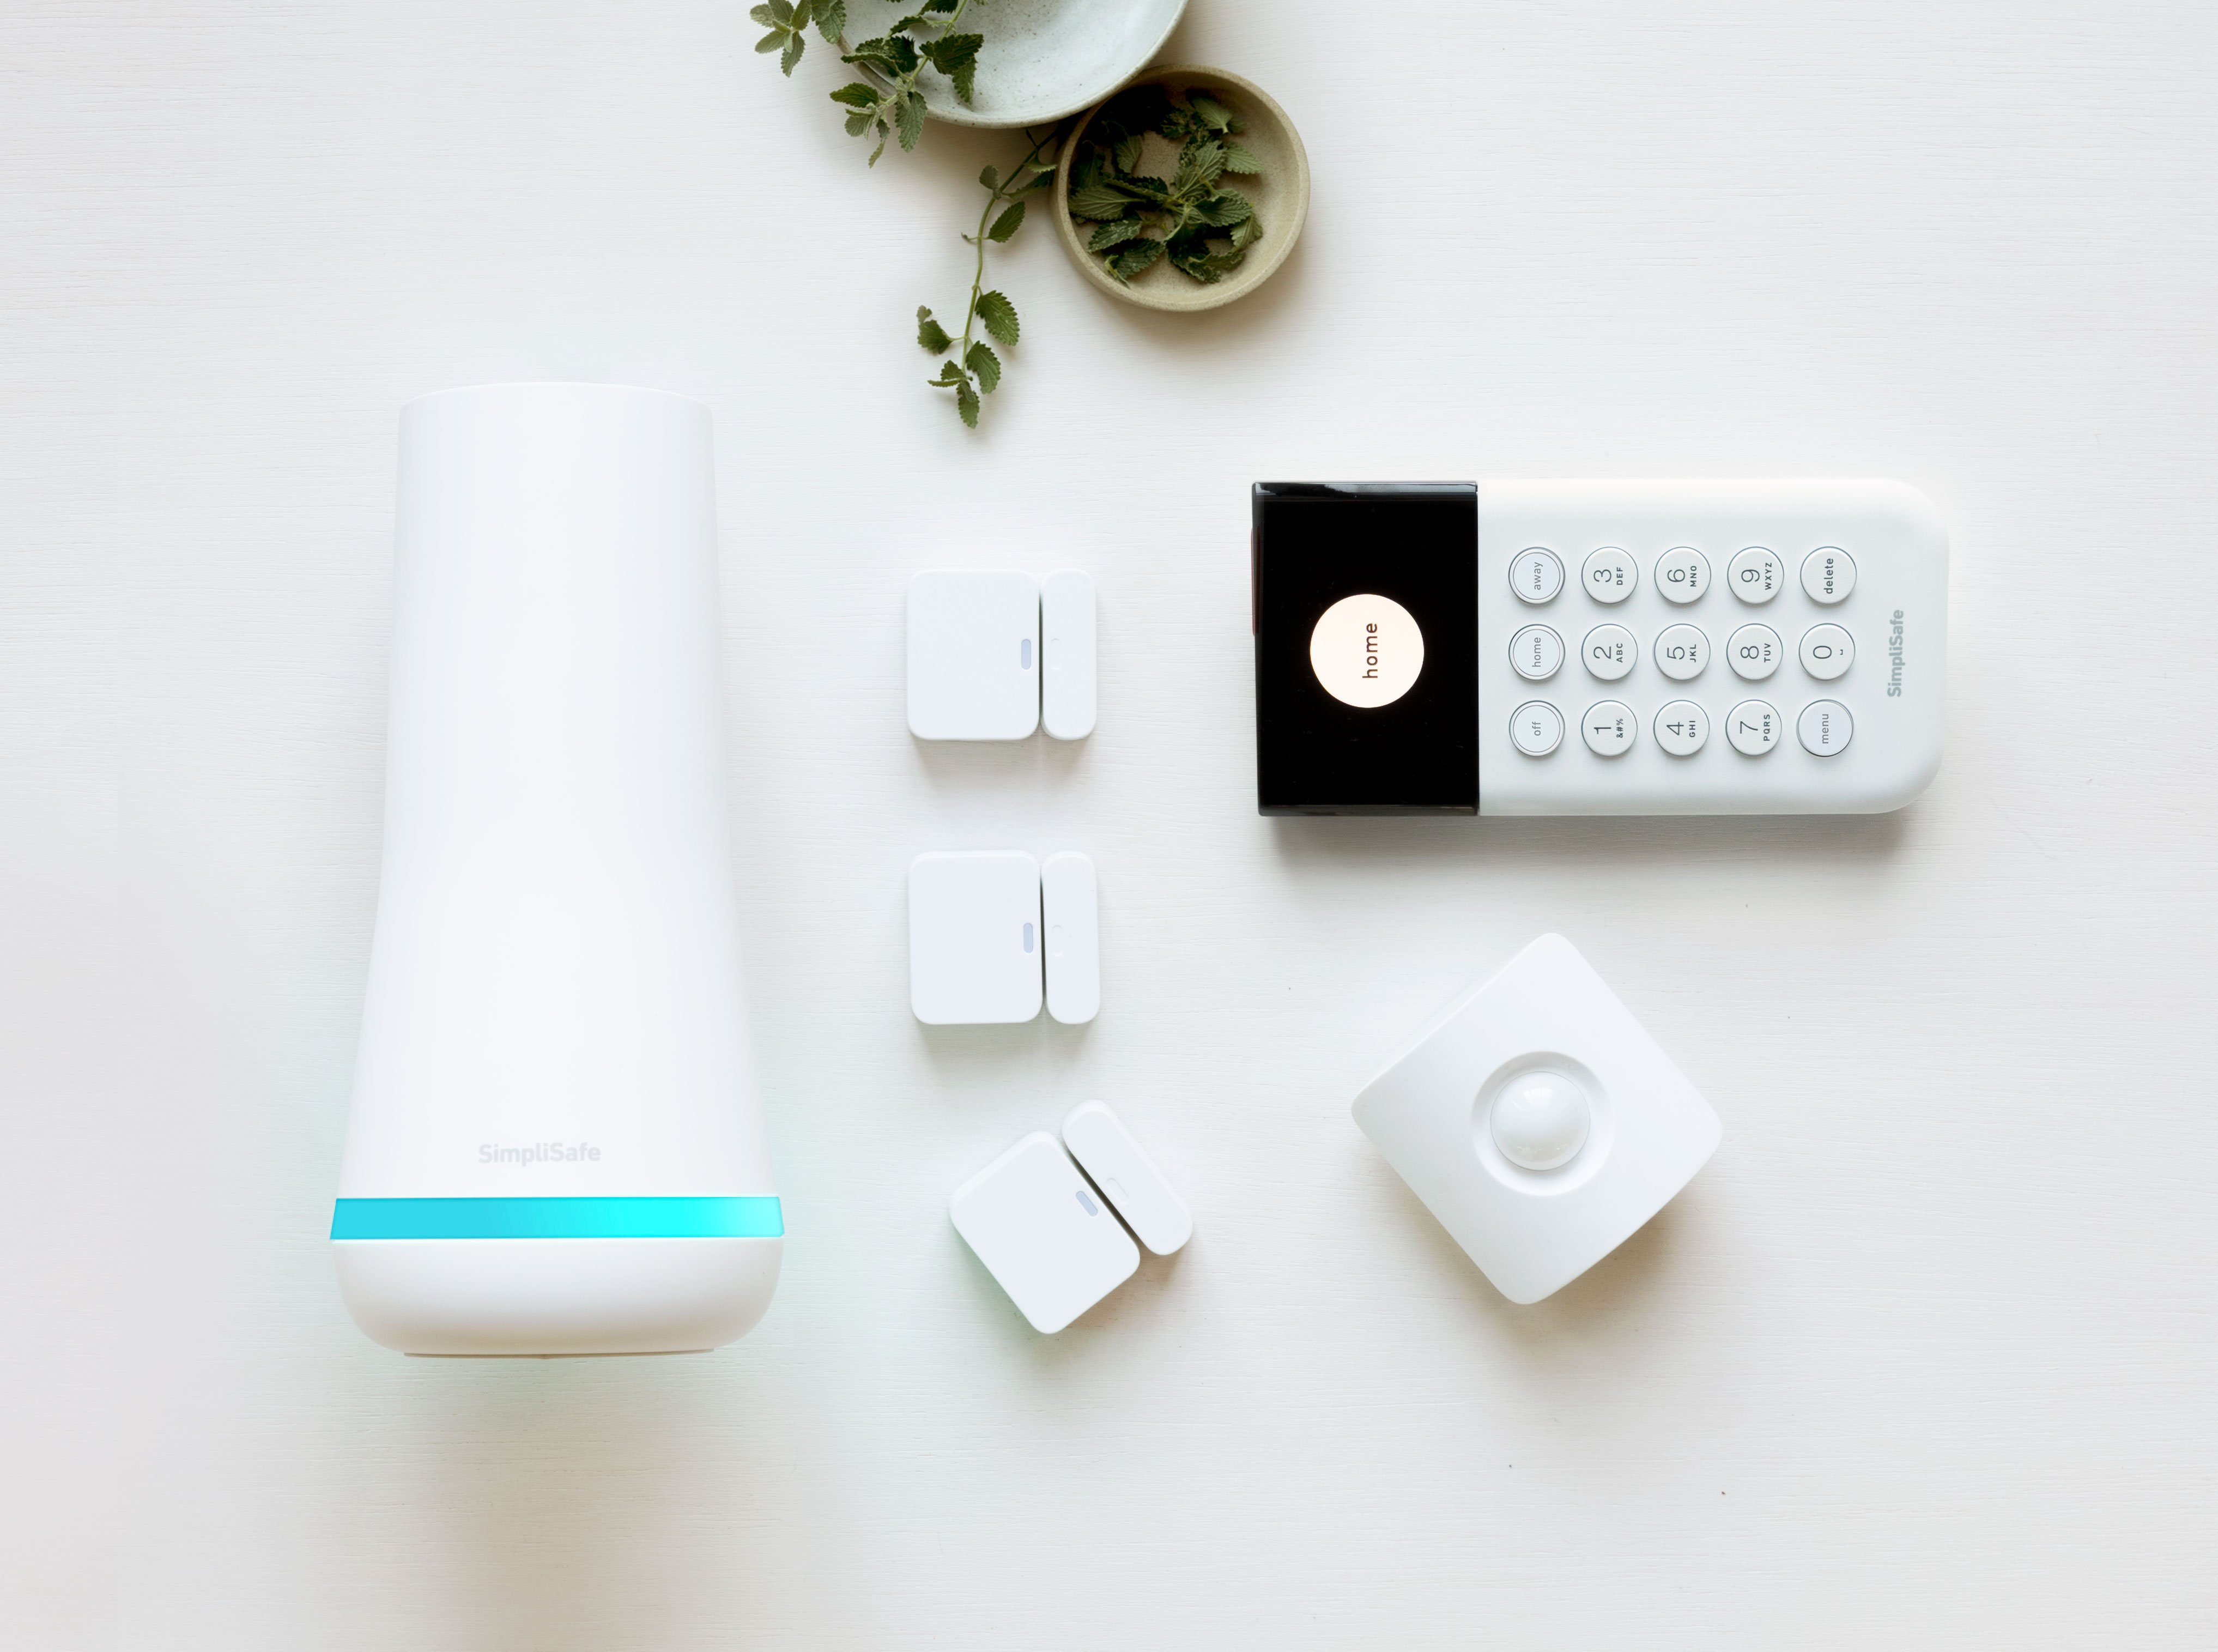 Save at SimpliSafe